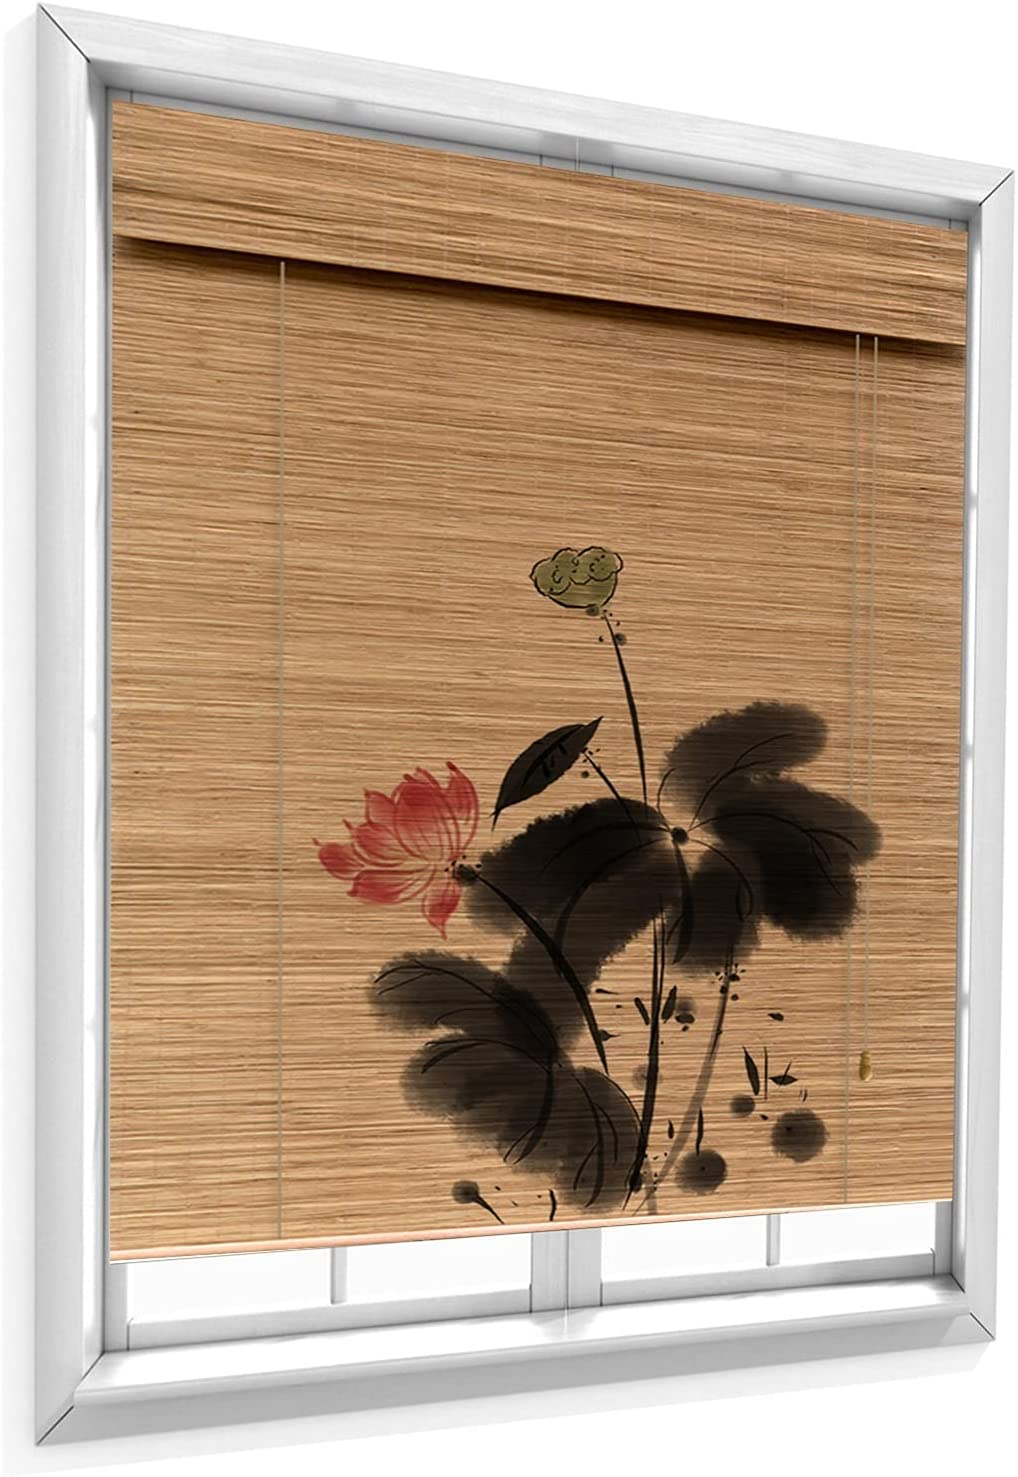 JUANJUAN Bamboo Roller Shade Challenge the lowest price of Japan ☆ Privacy Window Blinds Indoo Screen Max 59% OFF